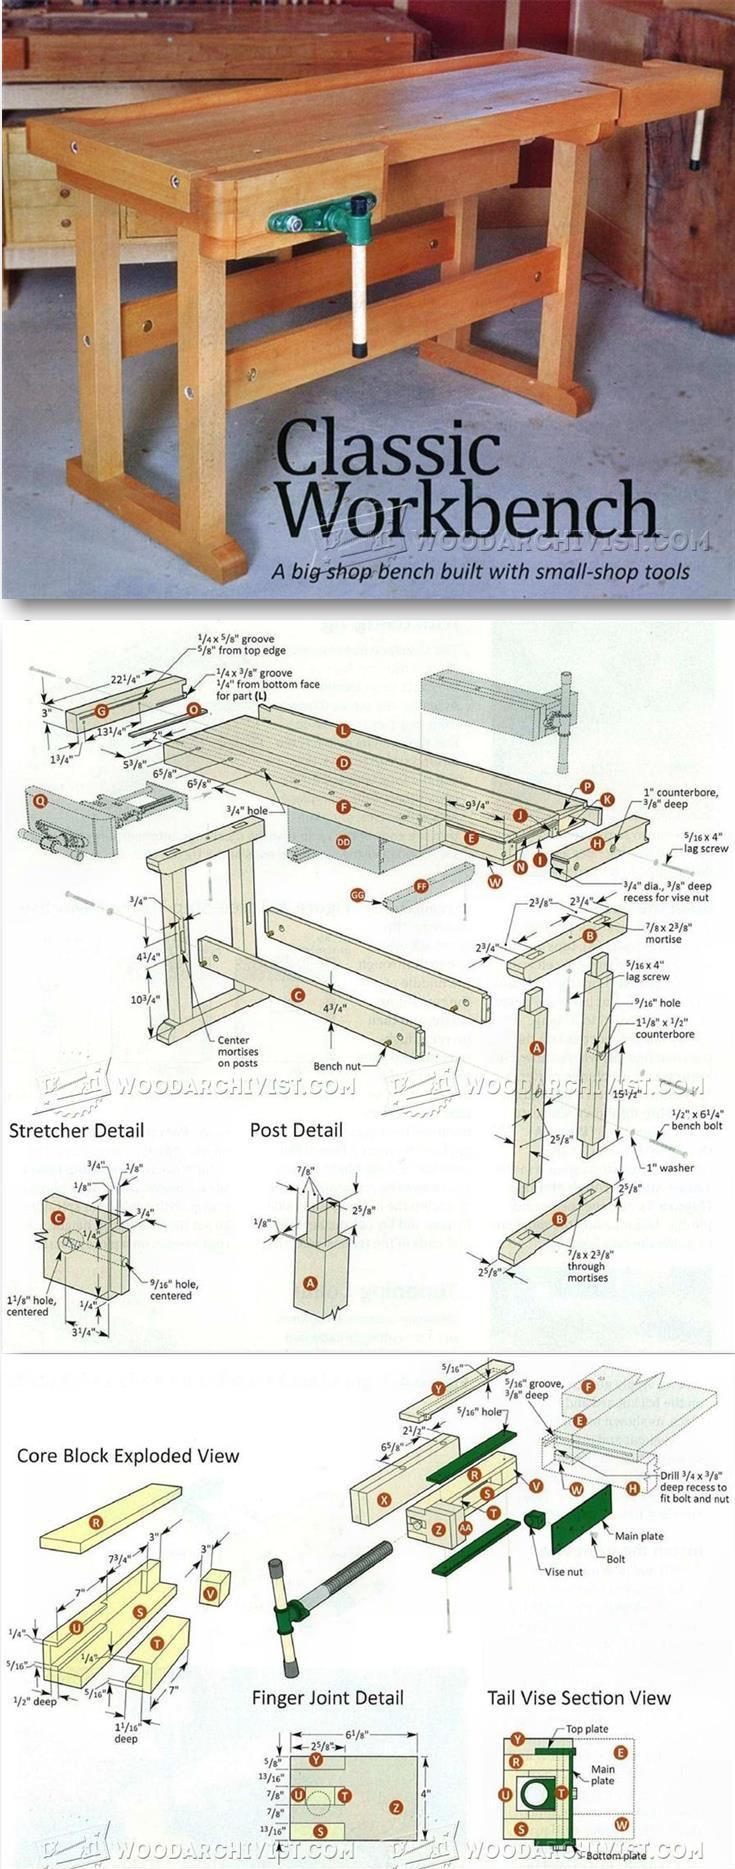 Classic Workbench Plans - Workshop Solutions Projects, Tips and Tricks | WoodArchivist.com